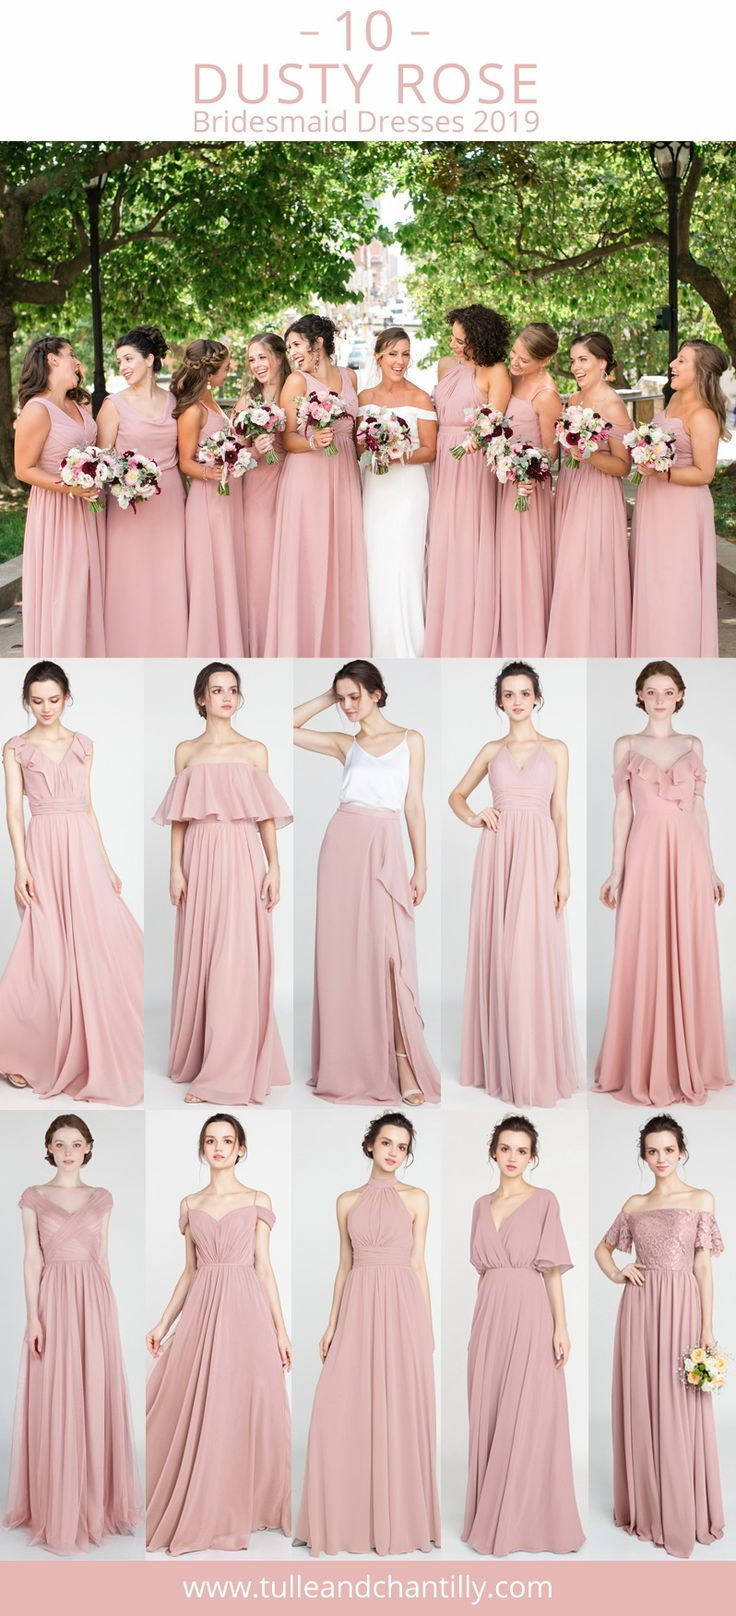 Top 10 Dusty Rose Bridesmaid Dresses 2019 Wedding Weddinginspiration Bridesm Dusty Rose Bridesmaid Dresses Short Bridesmaid Dresses Rose Bridesmaid Dresses